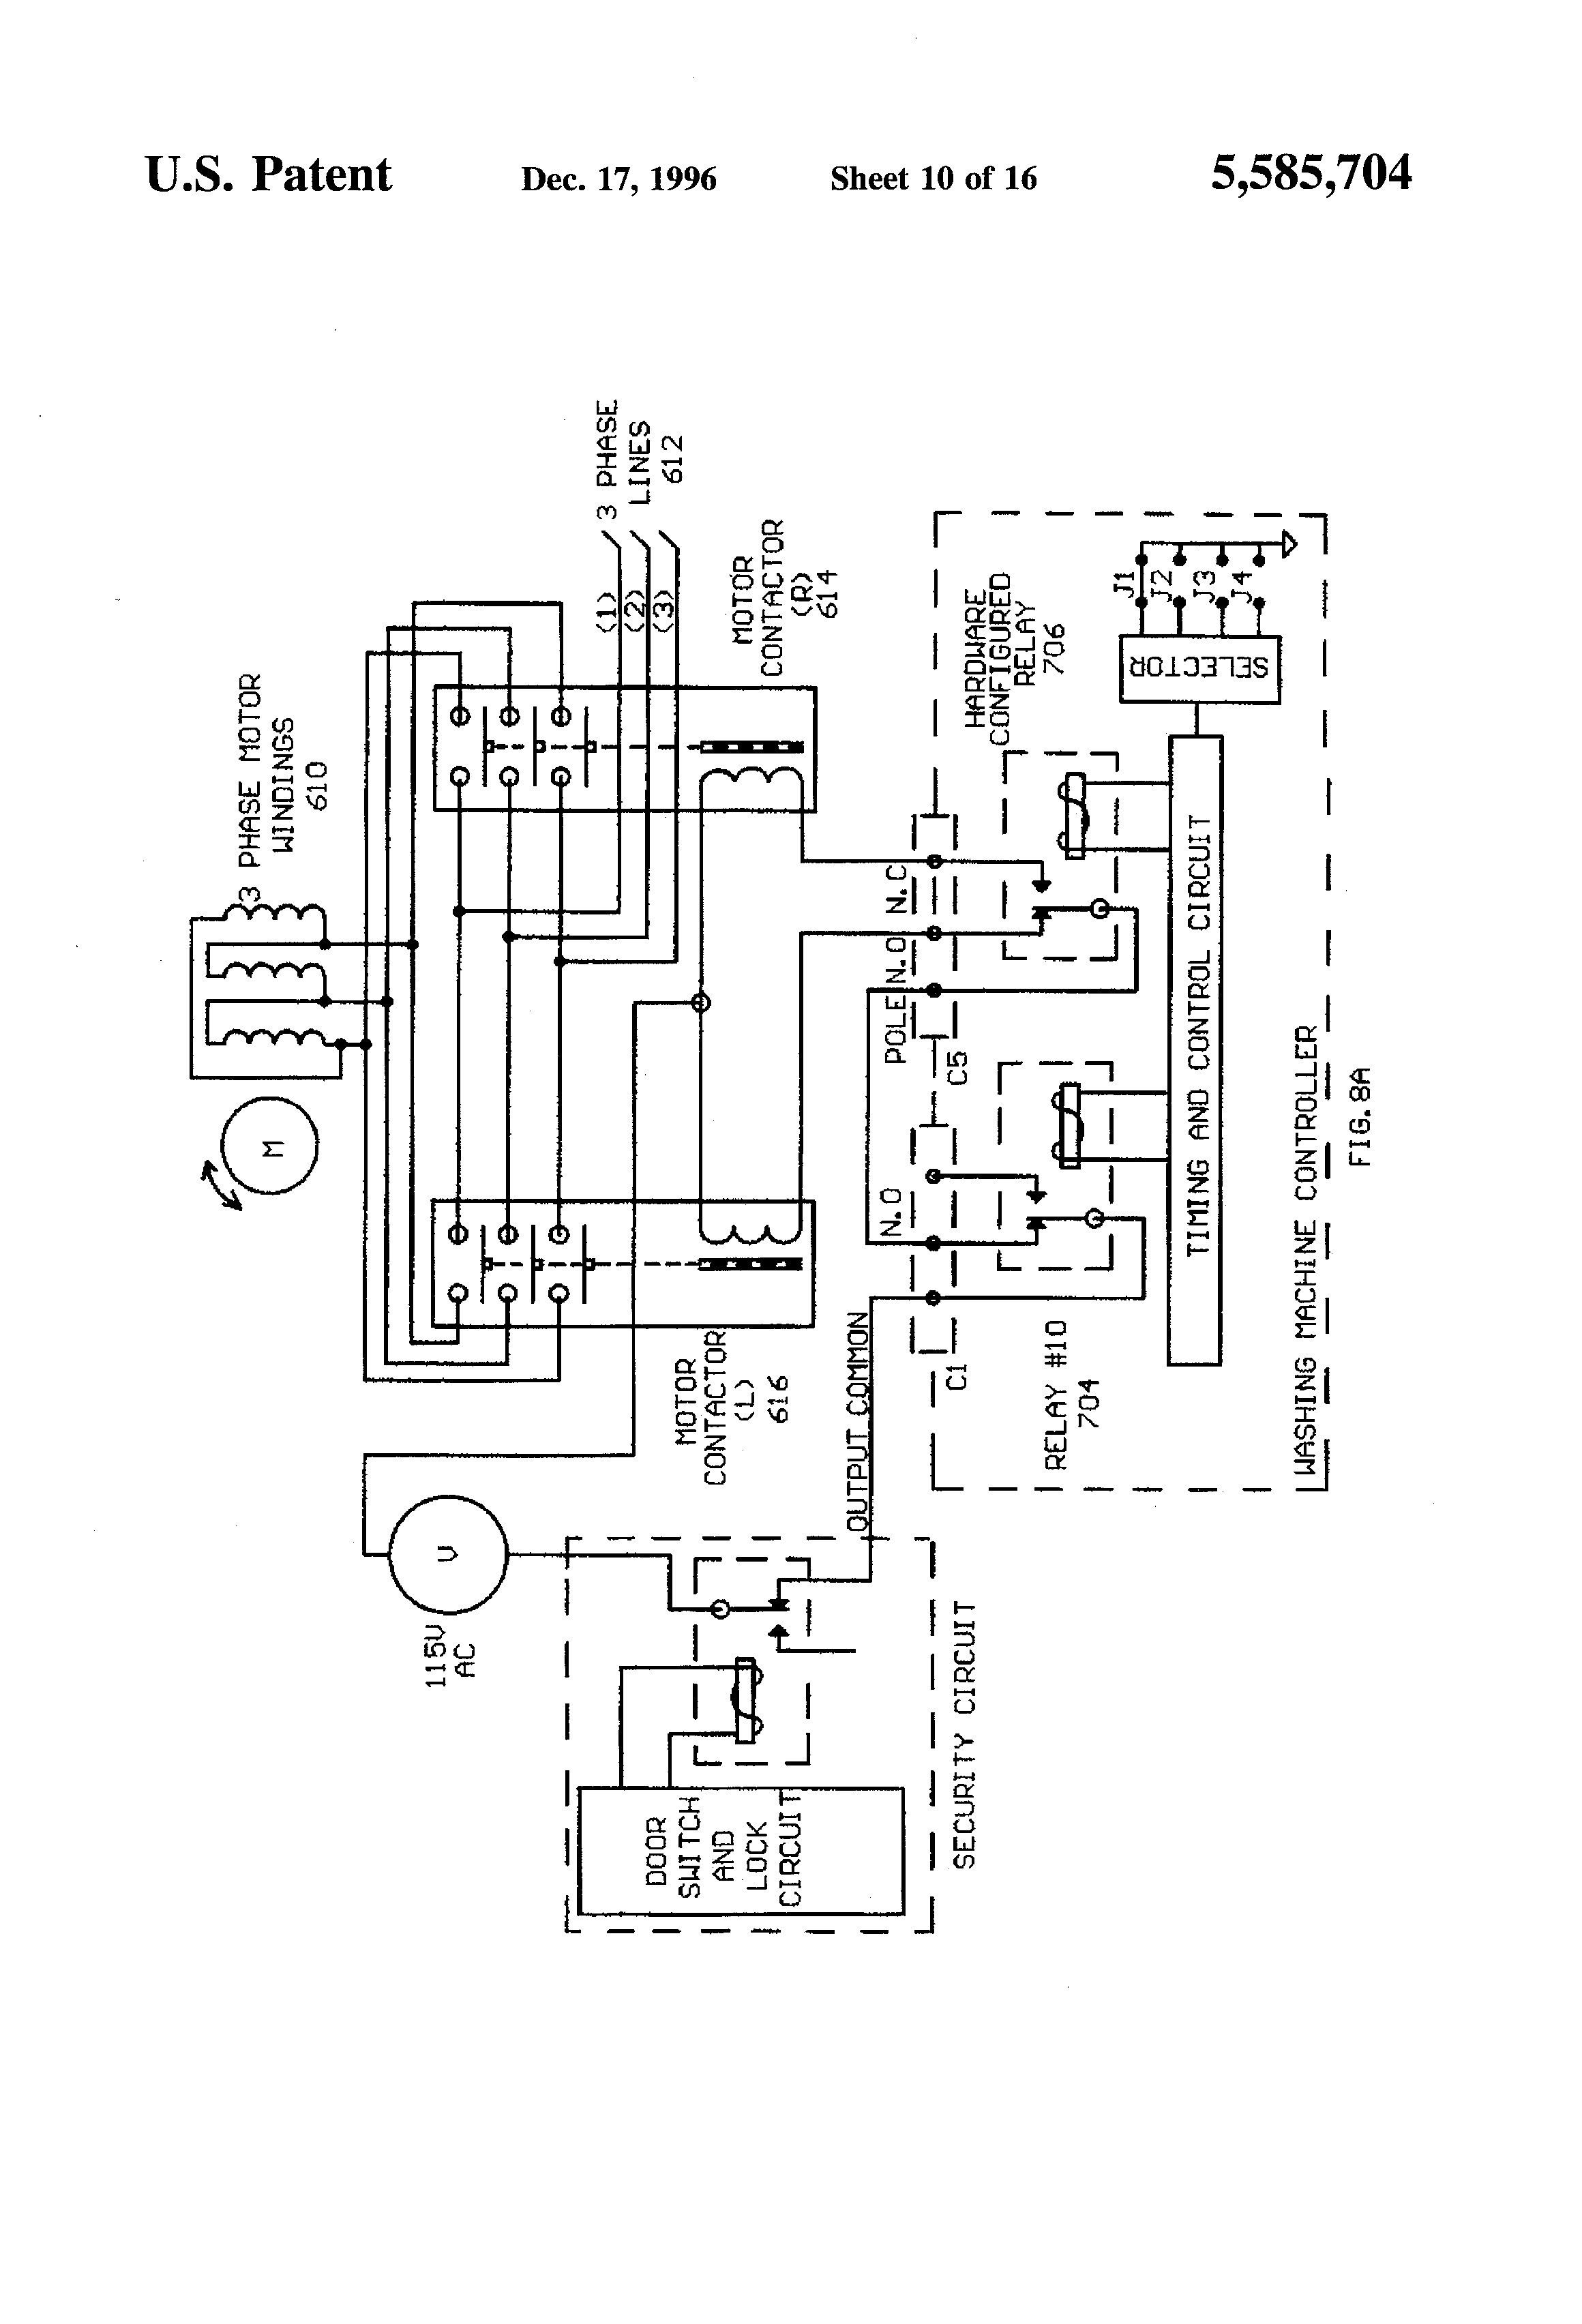 hight resolution of wiring diagram car wash diagram diagramtemplate diagramsamplewiring diagram car wash diagram diagramtemplate diagramsample